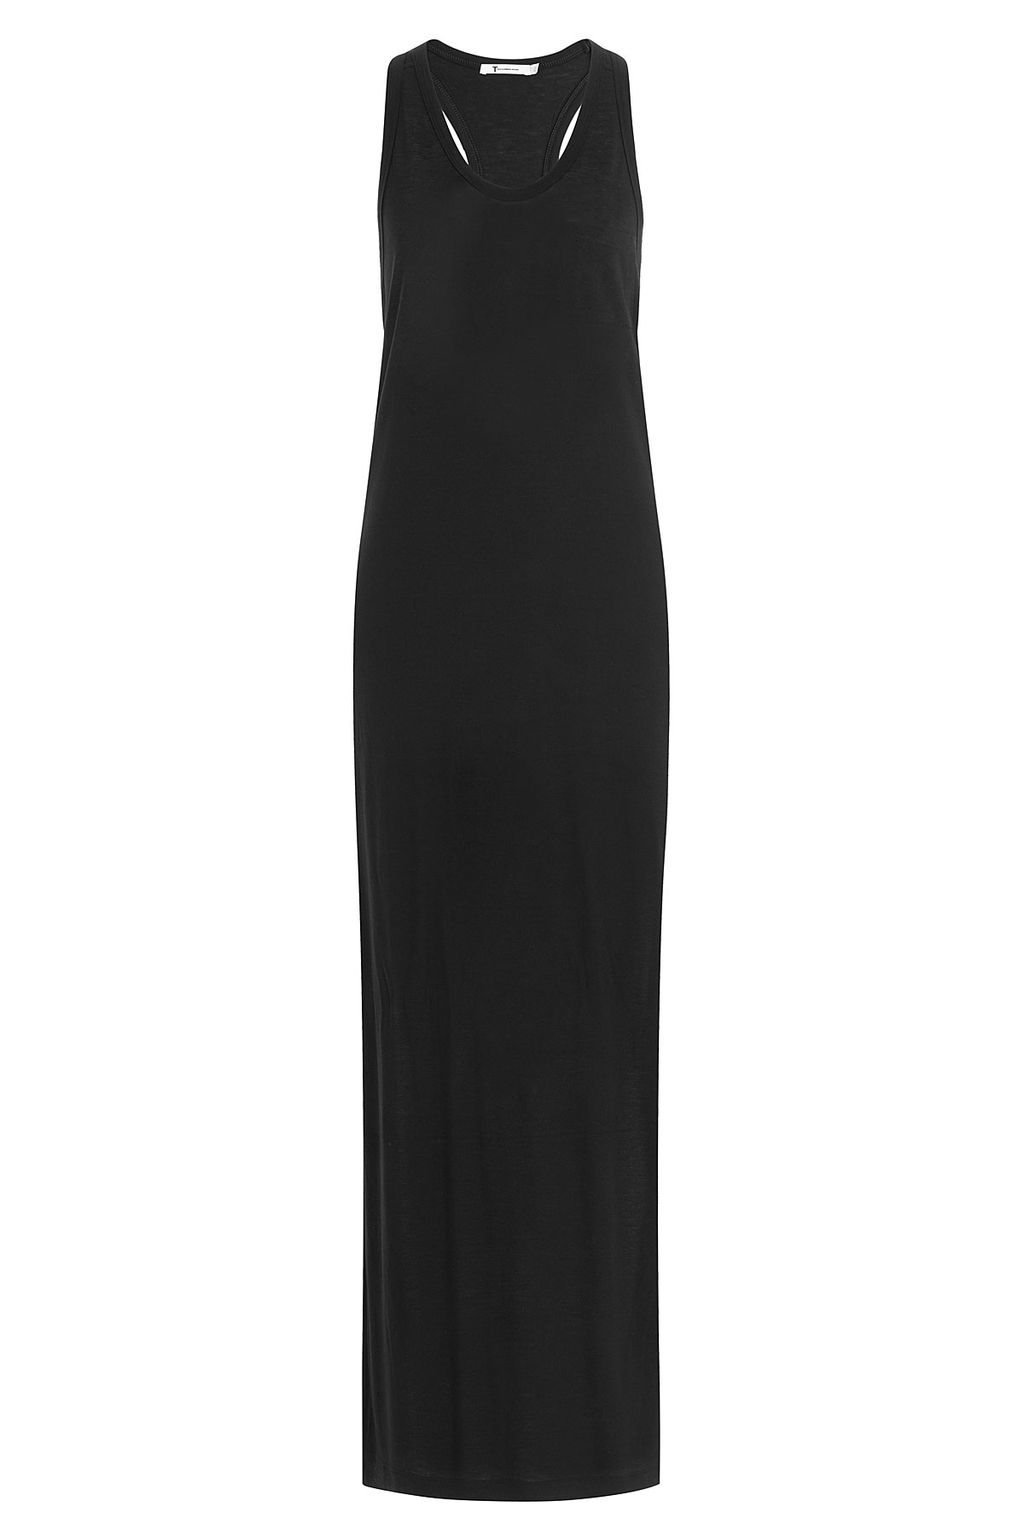 Classic Tank Jersey Maxi Dress Black - neckline: round neck; pattern: plain; sleeve style: sleeveless; style: maxi dress; length: ankle length; predominant colour: black; fit: body skimming; fibres: viscose/rayon - 100%; sleeve length: sleeveless; occasions: holiday; pattern type: fabric; texture group: jersey - stretchy/drapey; season: s/s 2016; wardrobe: holiday